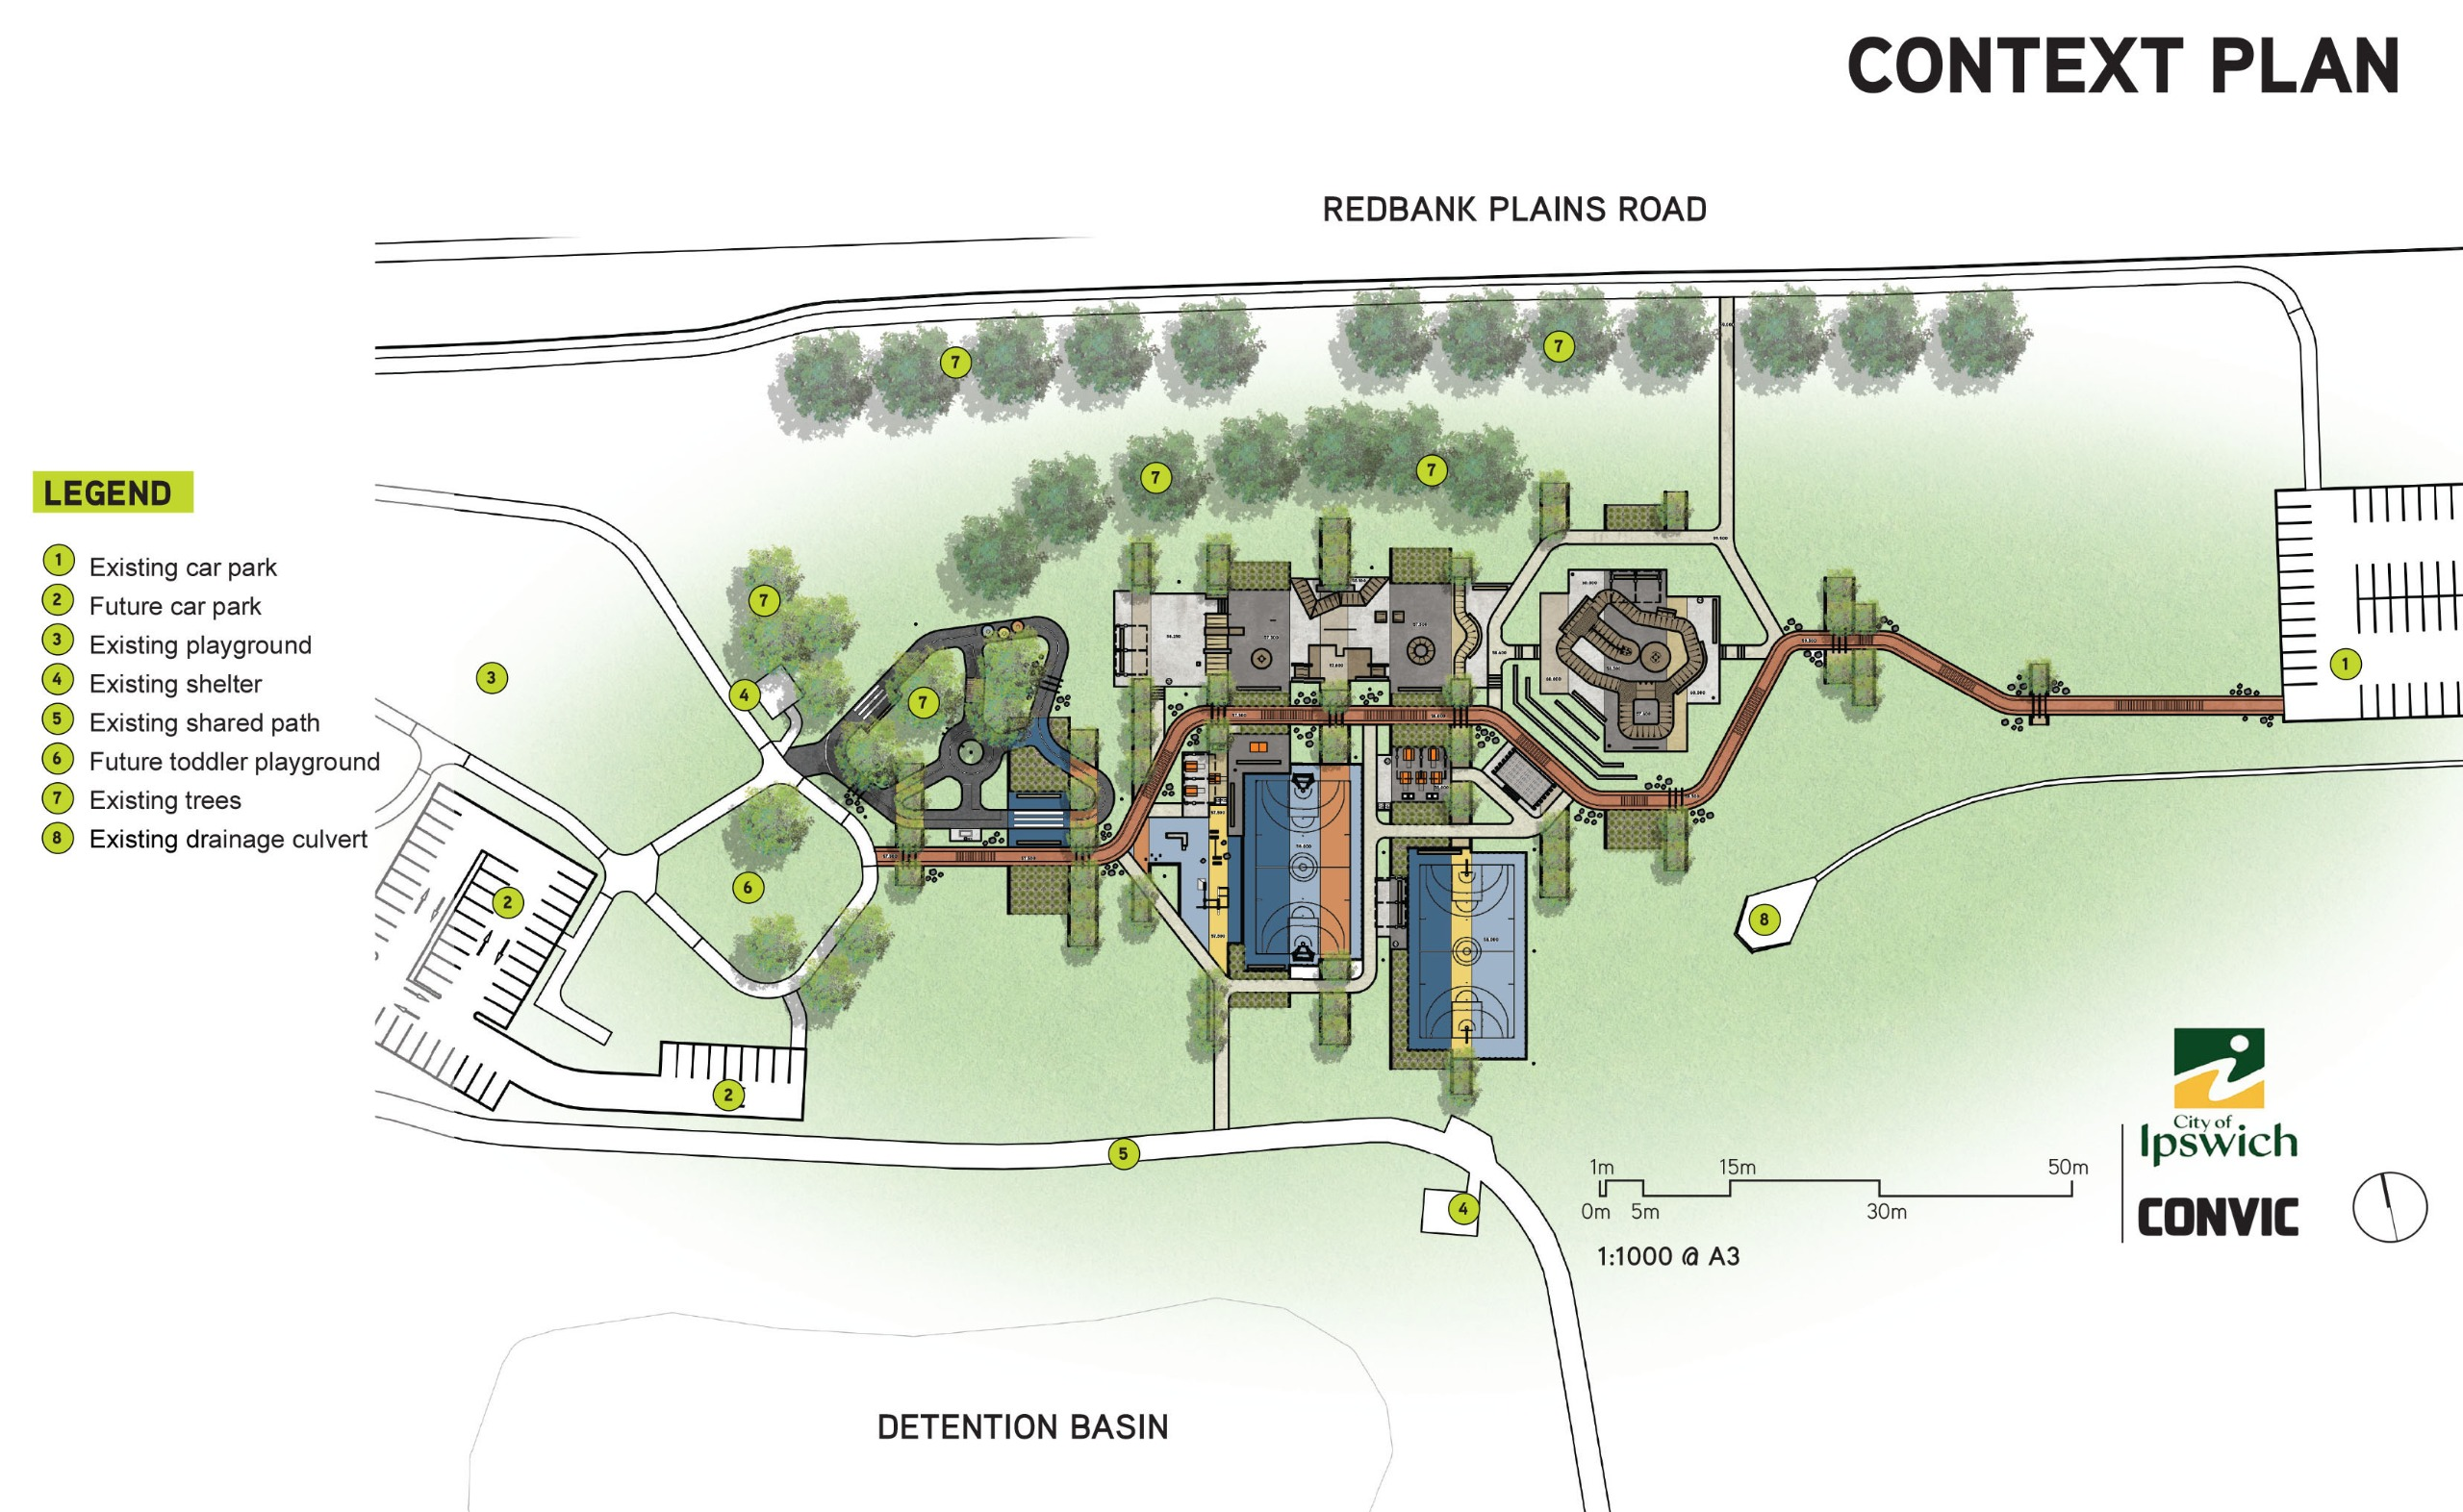 Overall plan of design concept including proposed future works